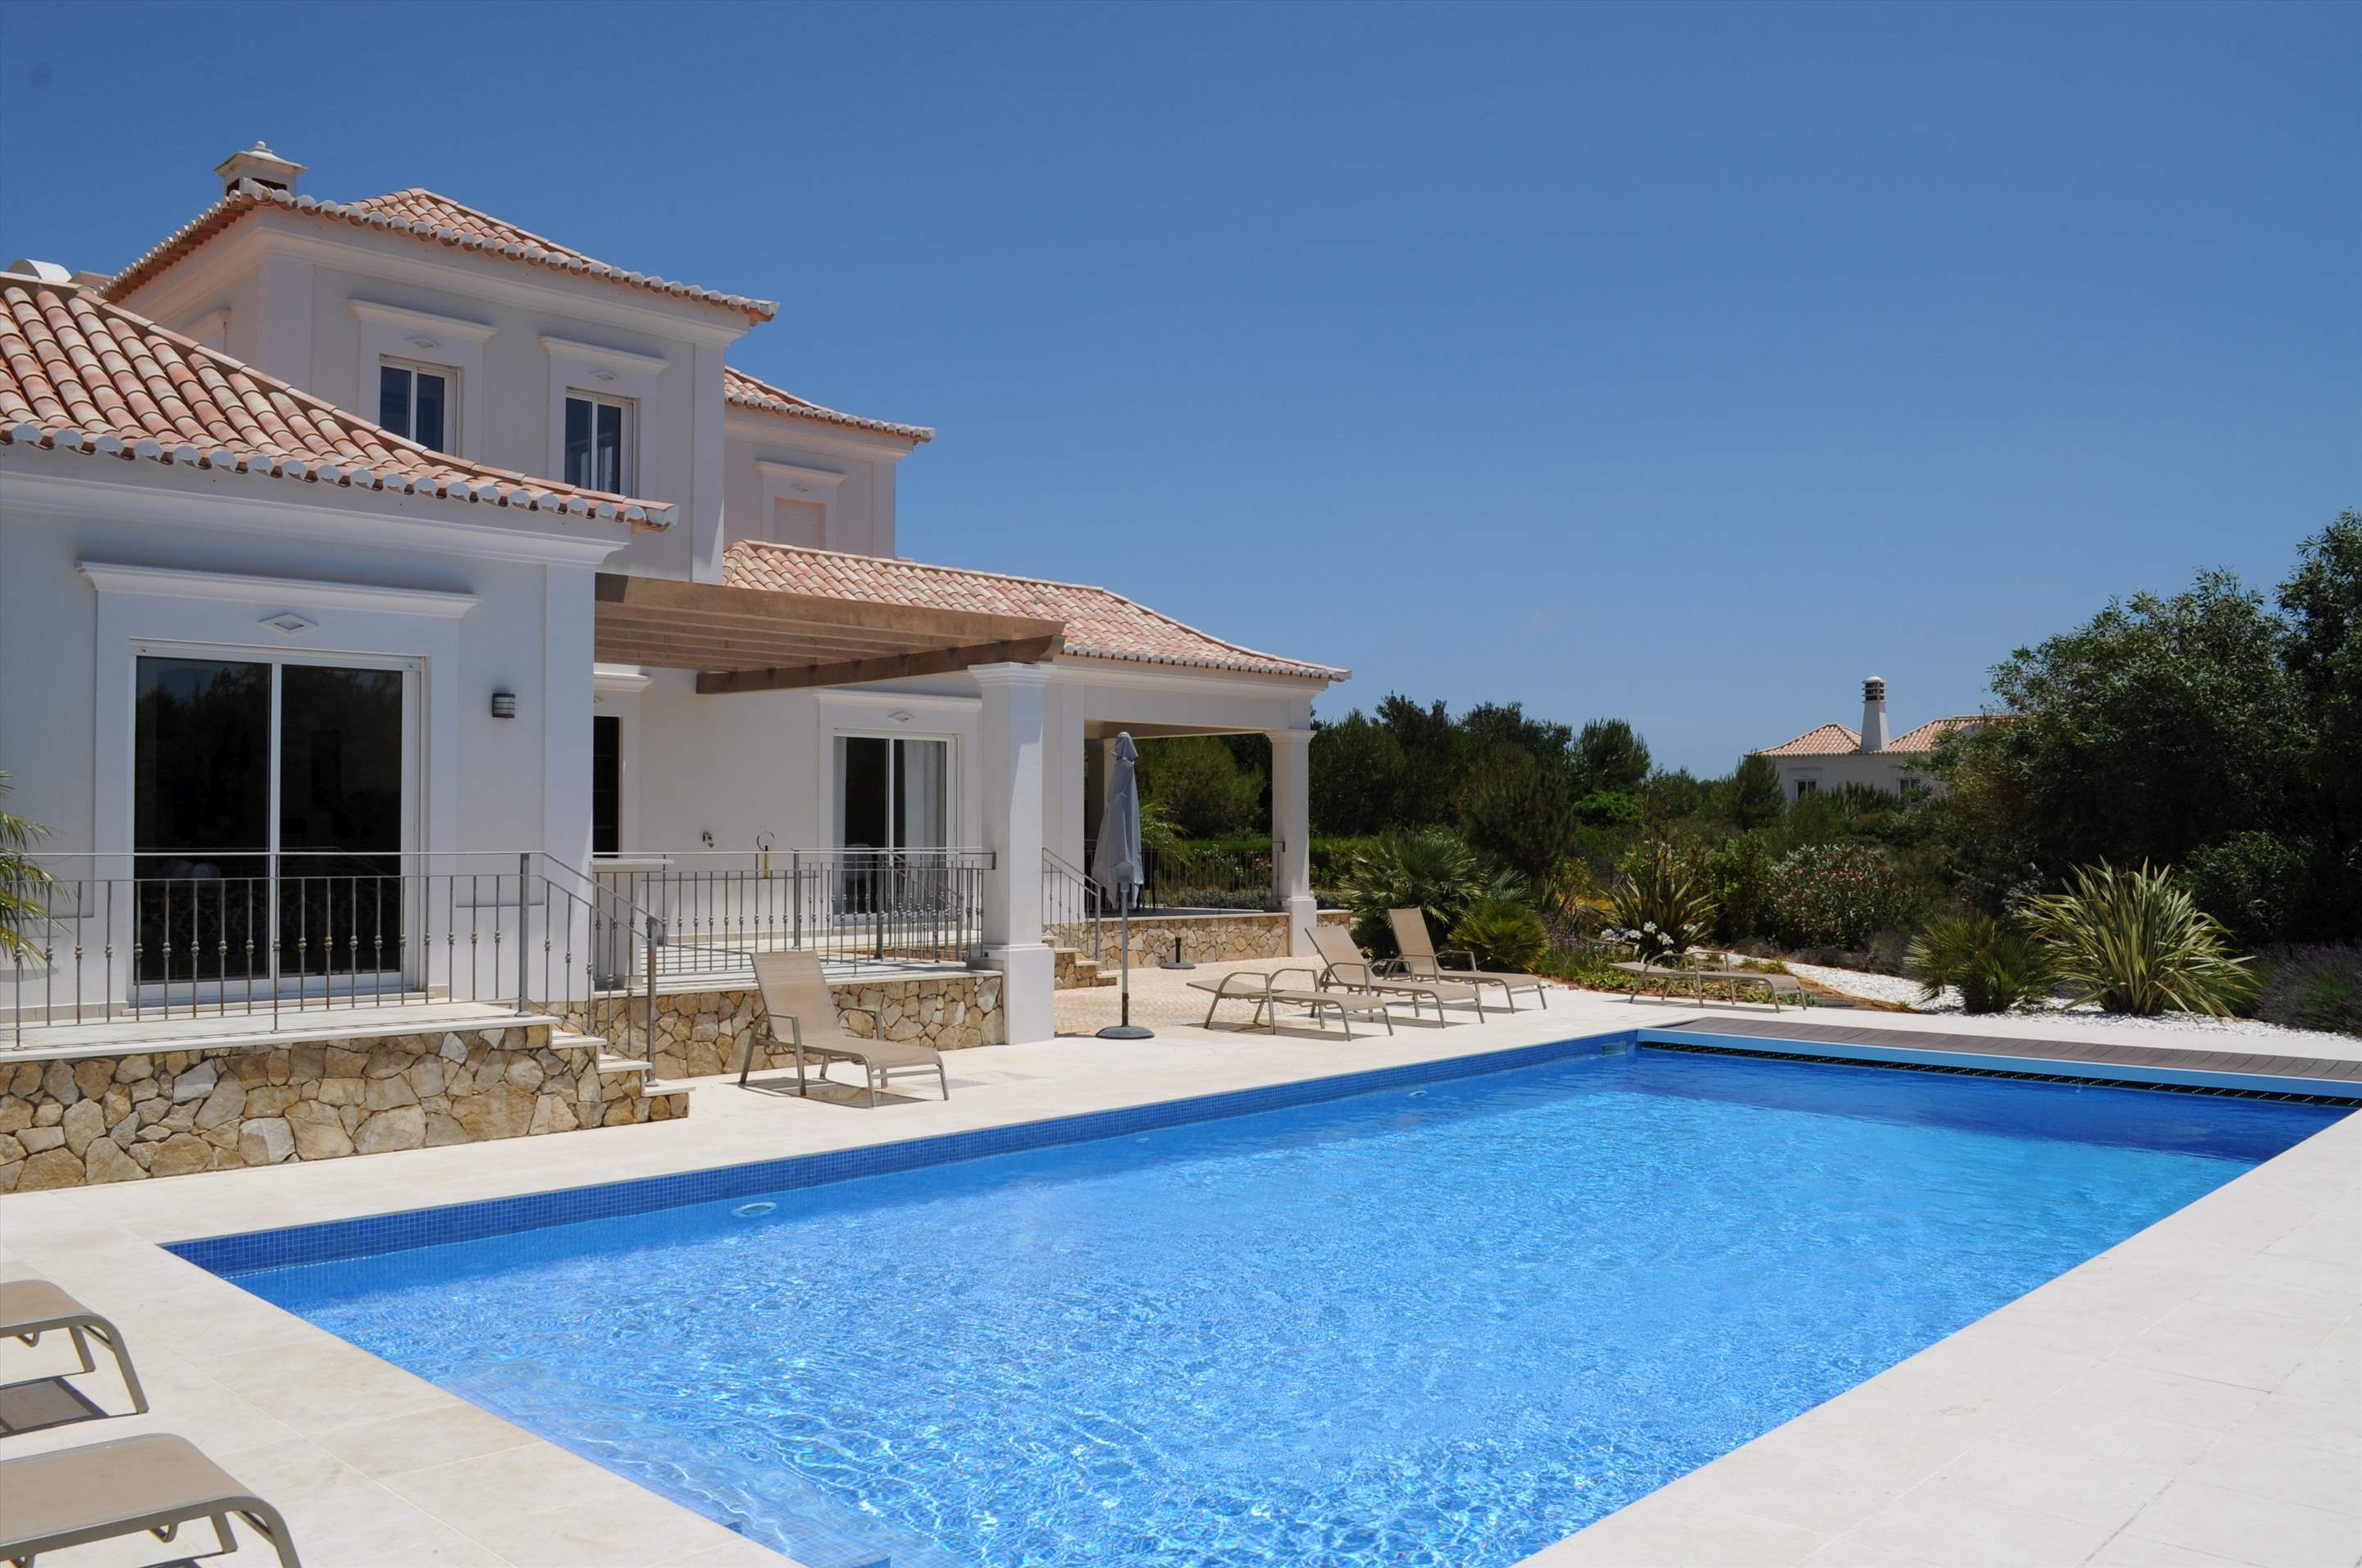 Martinhal Luxury Villa No.18, 5 bedroom villa in Martinhal Sagres, Algarve Photo #8